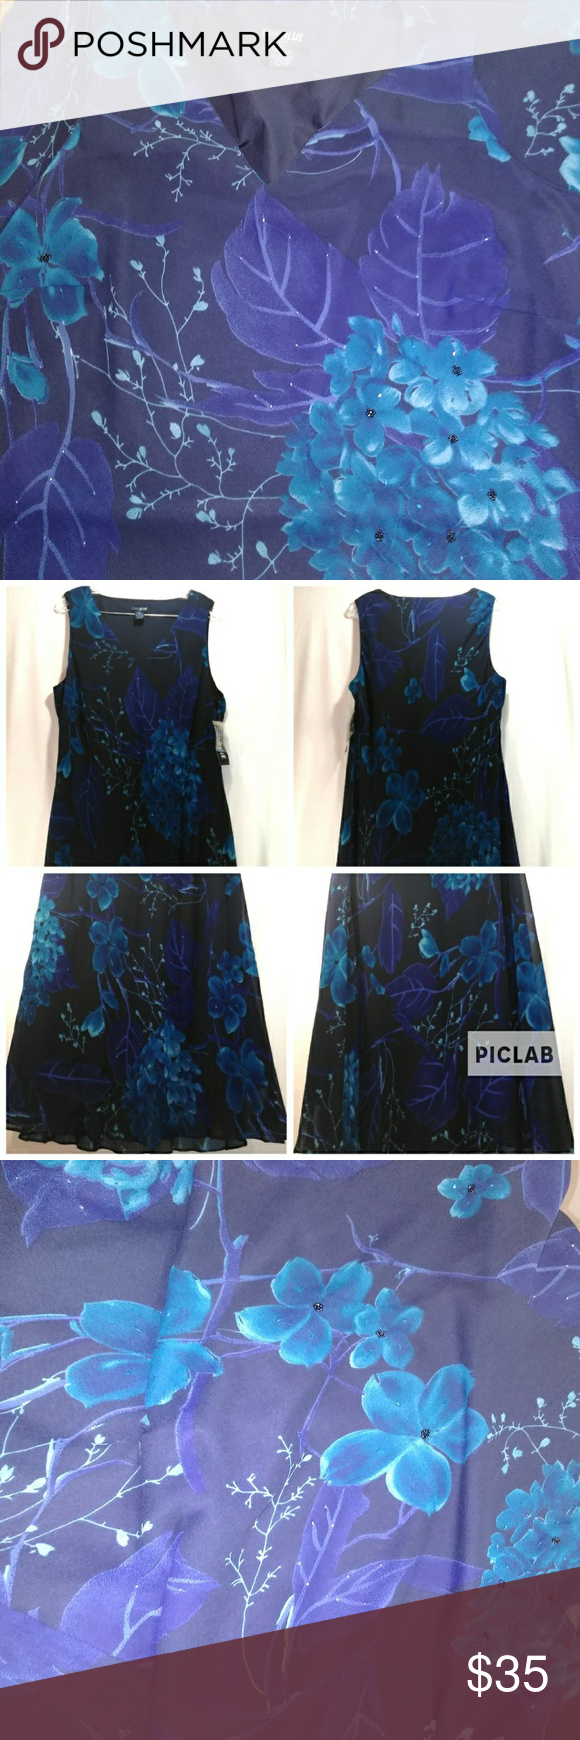 374658385152f Eva Blue plus maxi dress. Size 18 Eva Blue plus maxi dress. Gorgeous floral  print. Very flowy. Comes with extra beads. This is a dark navy dress with a  ...